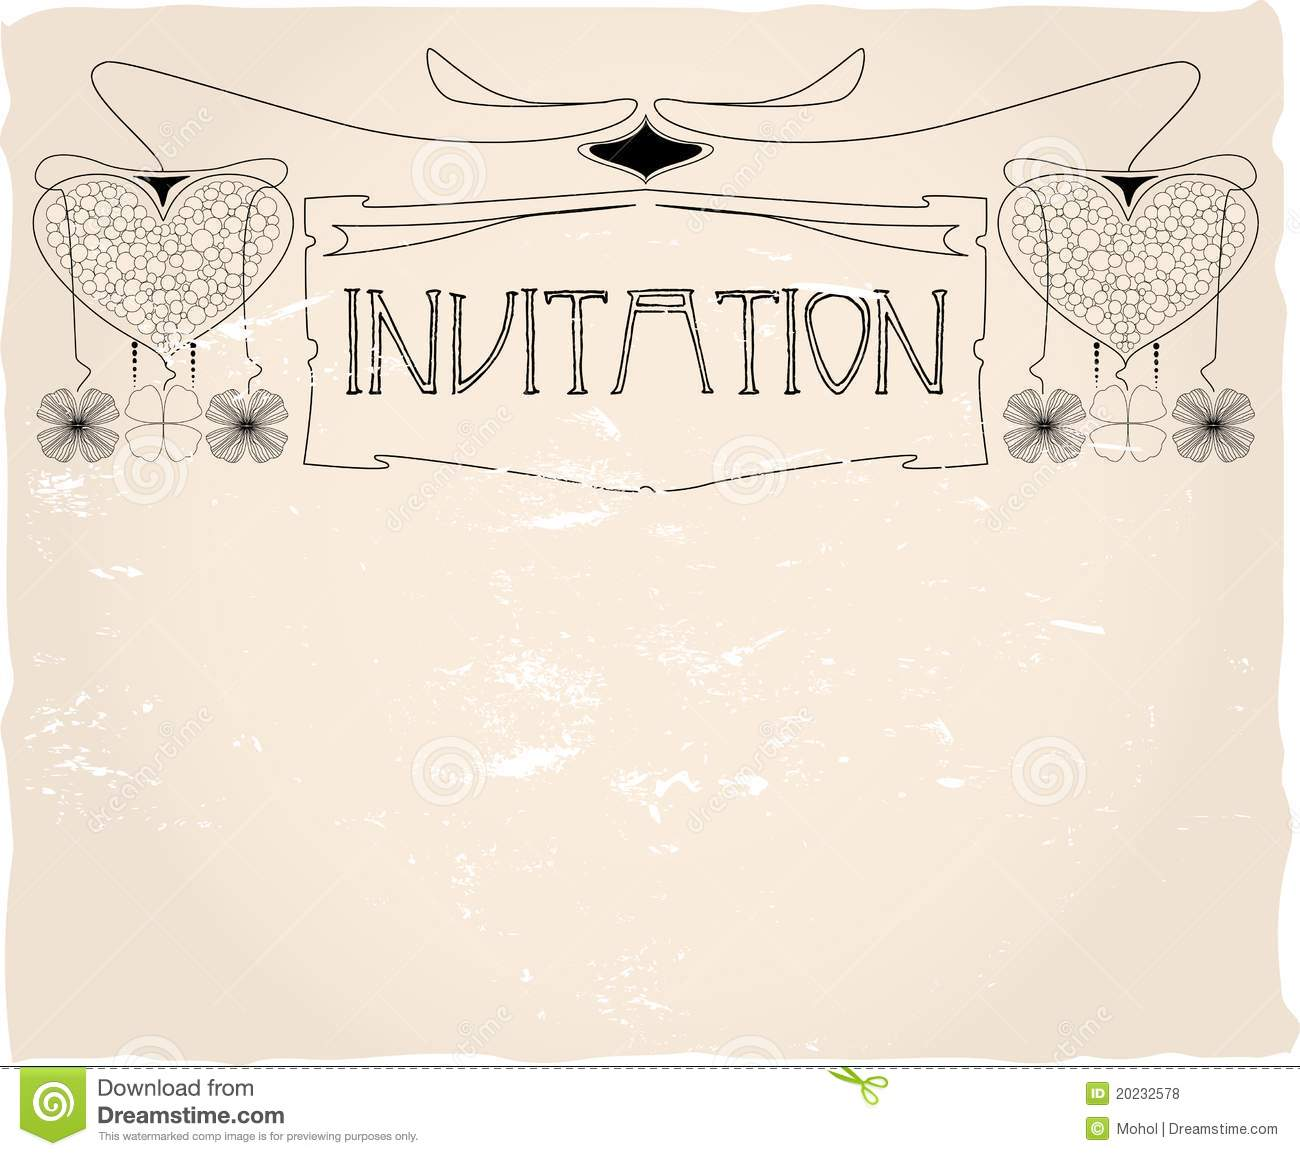 Invitation Template, Royalty Free Stock Photos - Image: 20232578